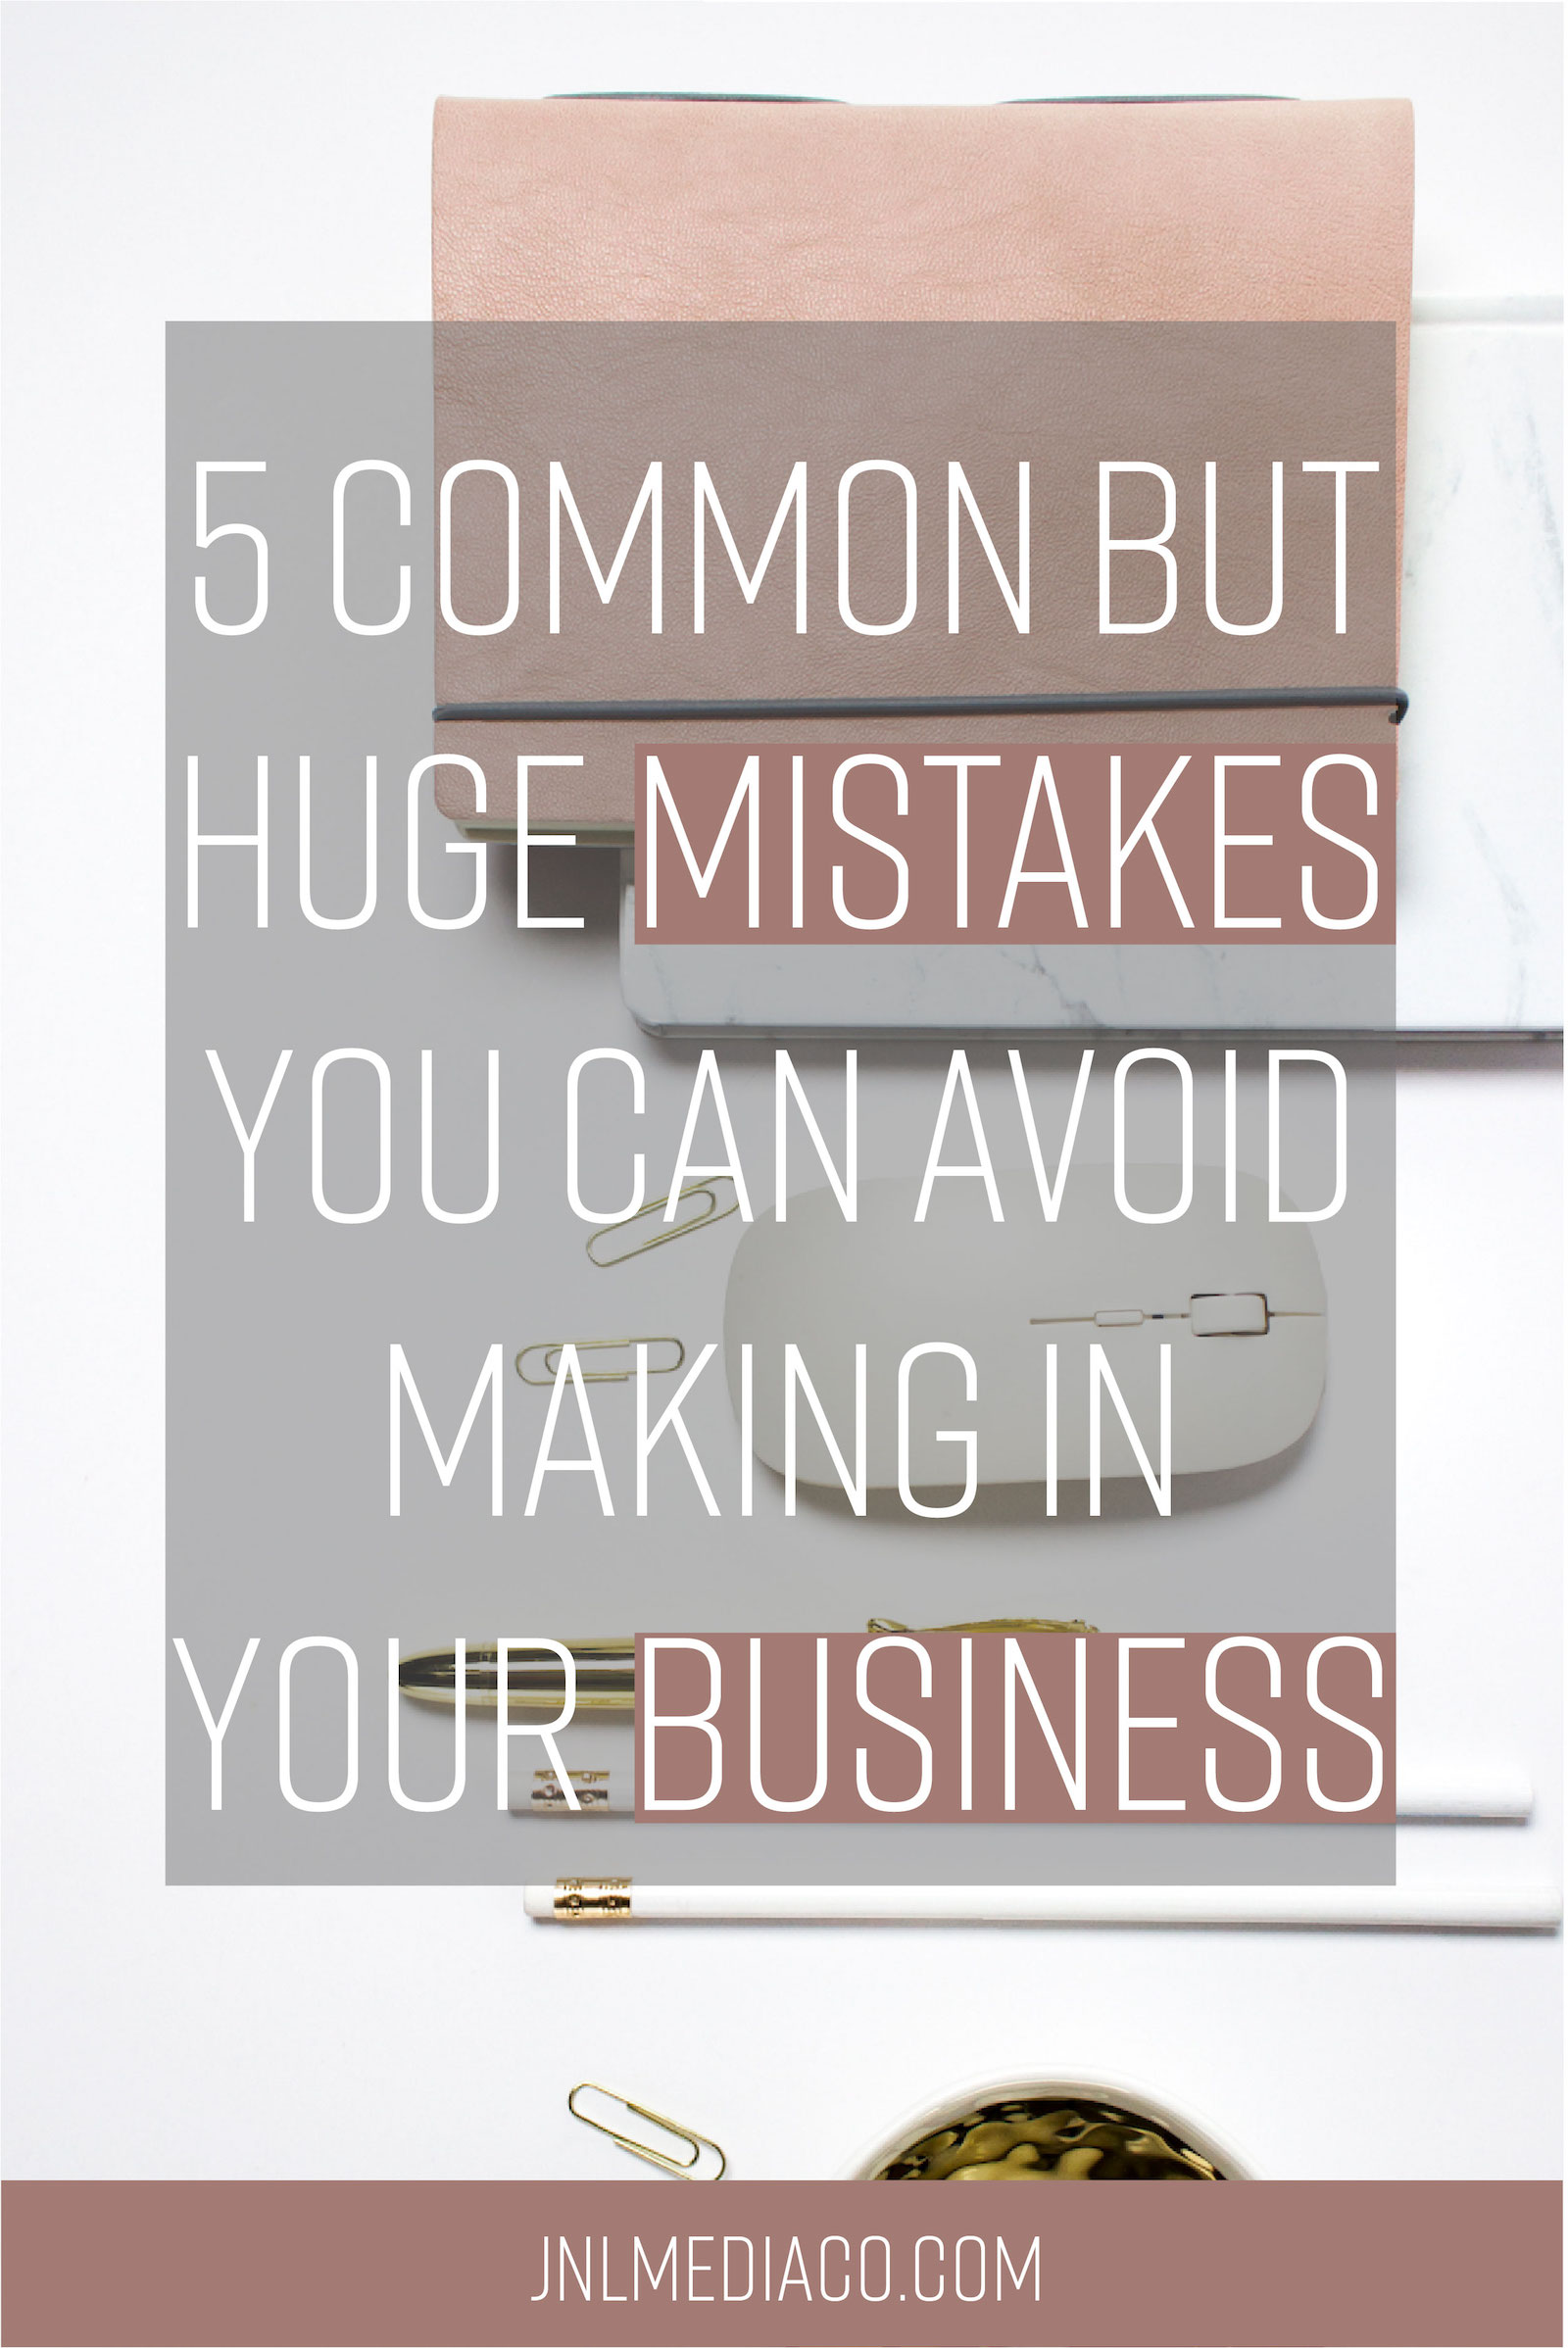 What are the 5 Common But Huge Mistakes You Can Avoid Making In Your Business? Find out by reading the full post and make sure to re-pin if you found it helpful